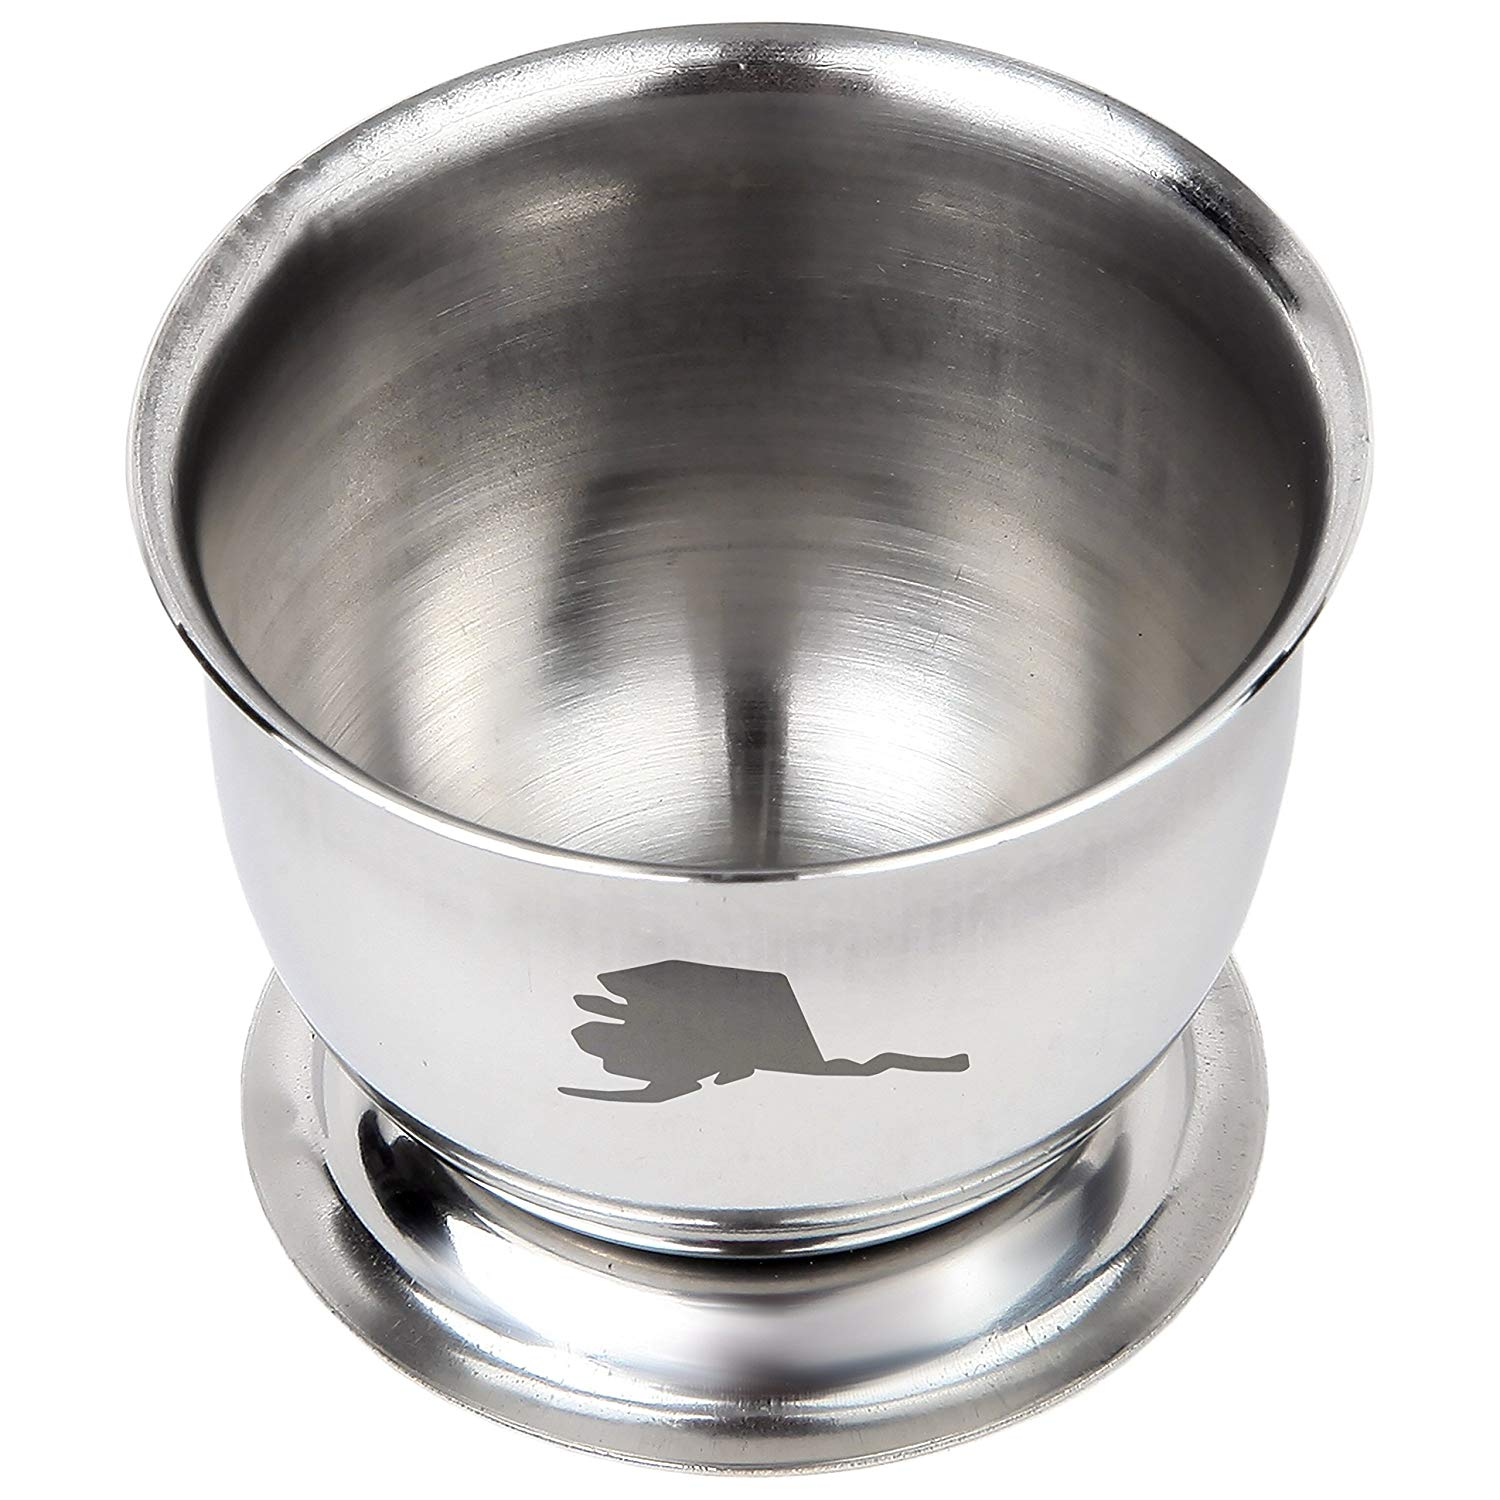 Alaska Engraved Stainless Steel Egg Cup